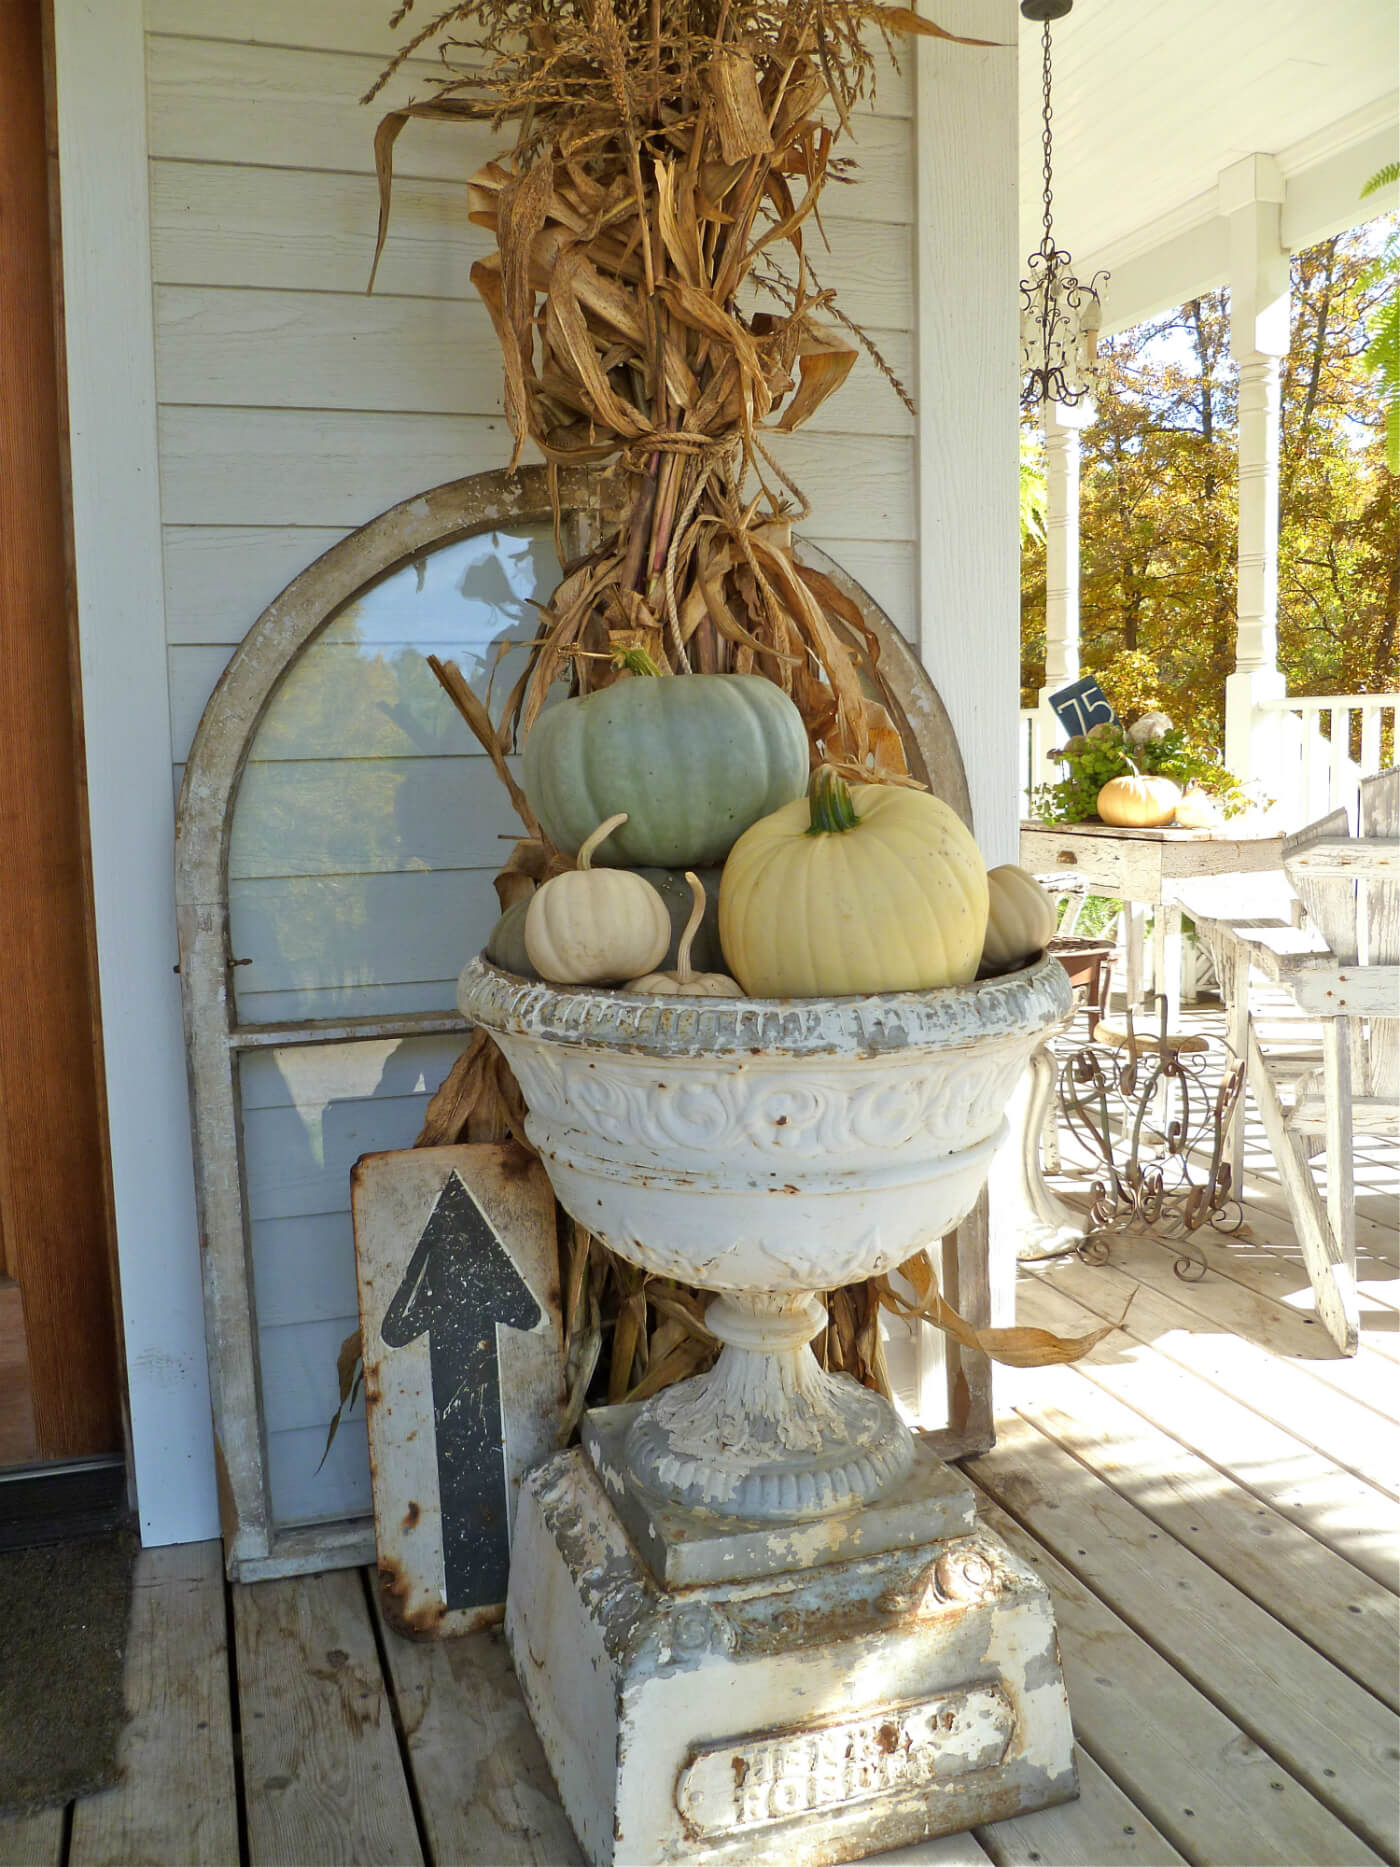 Stunning Fall Urn & Found Sign Decorations